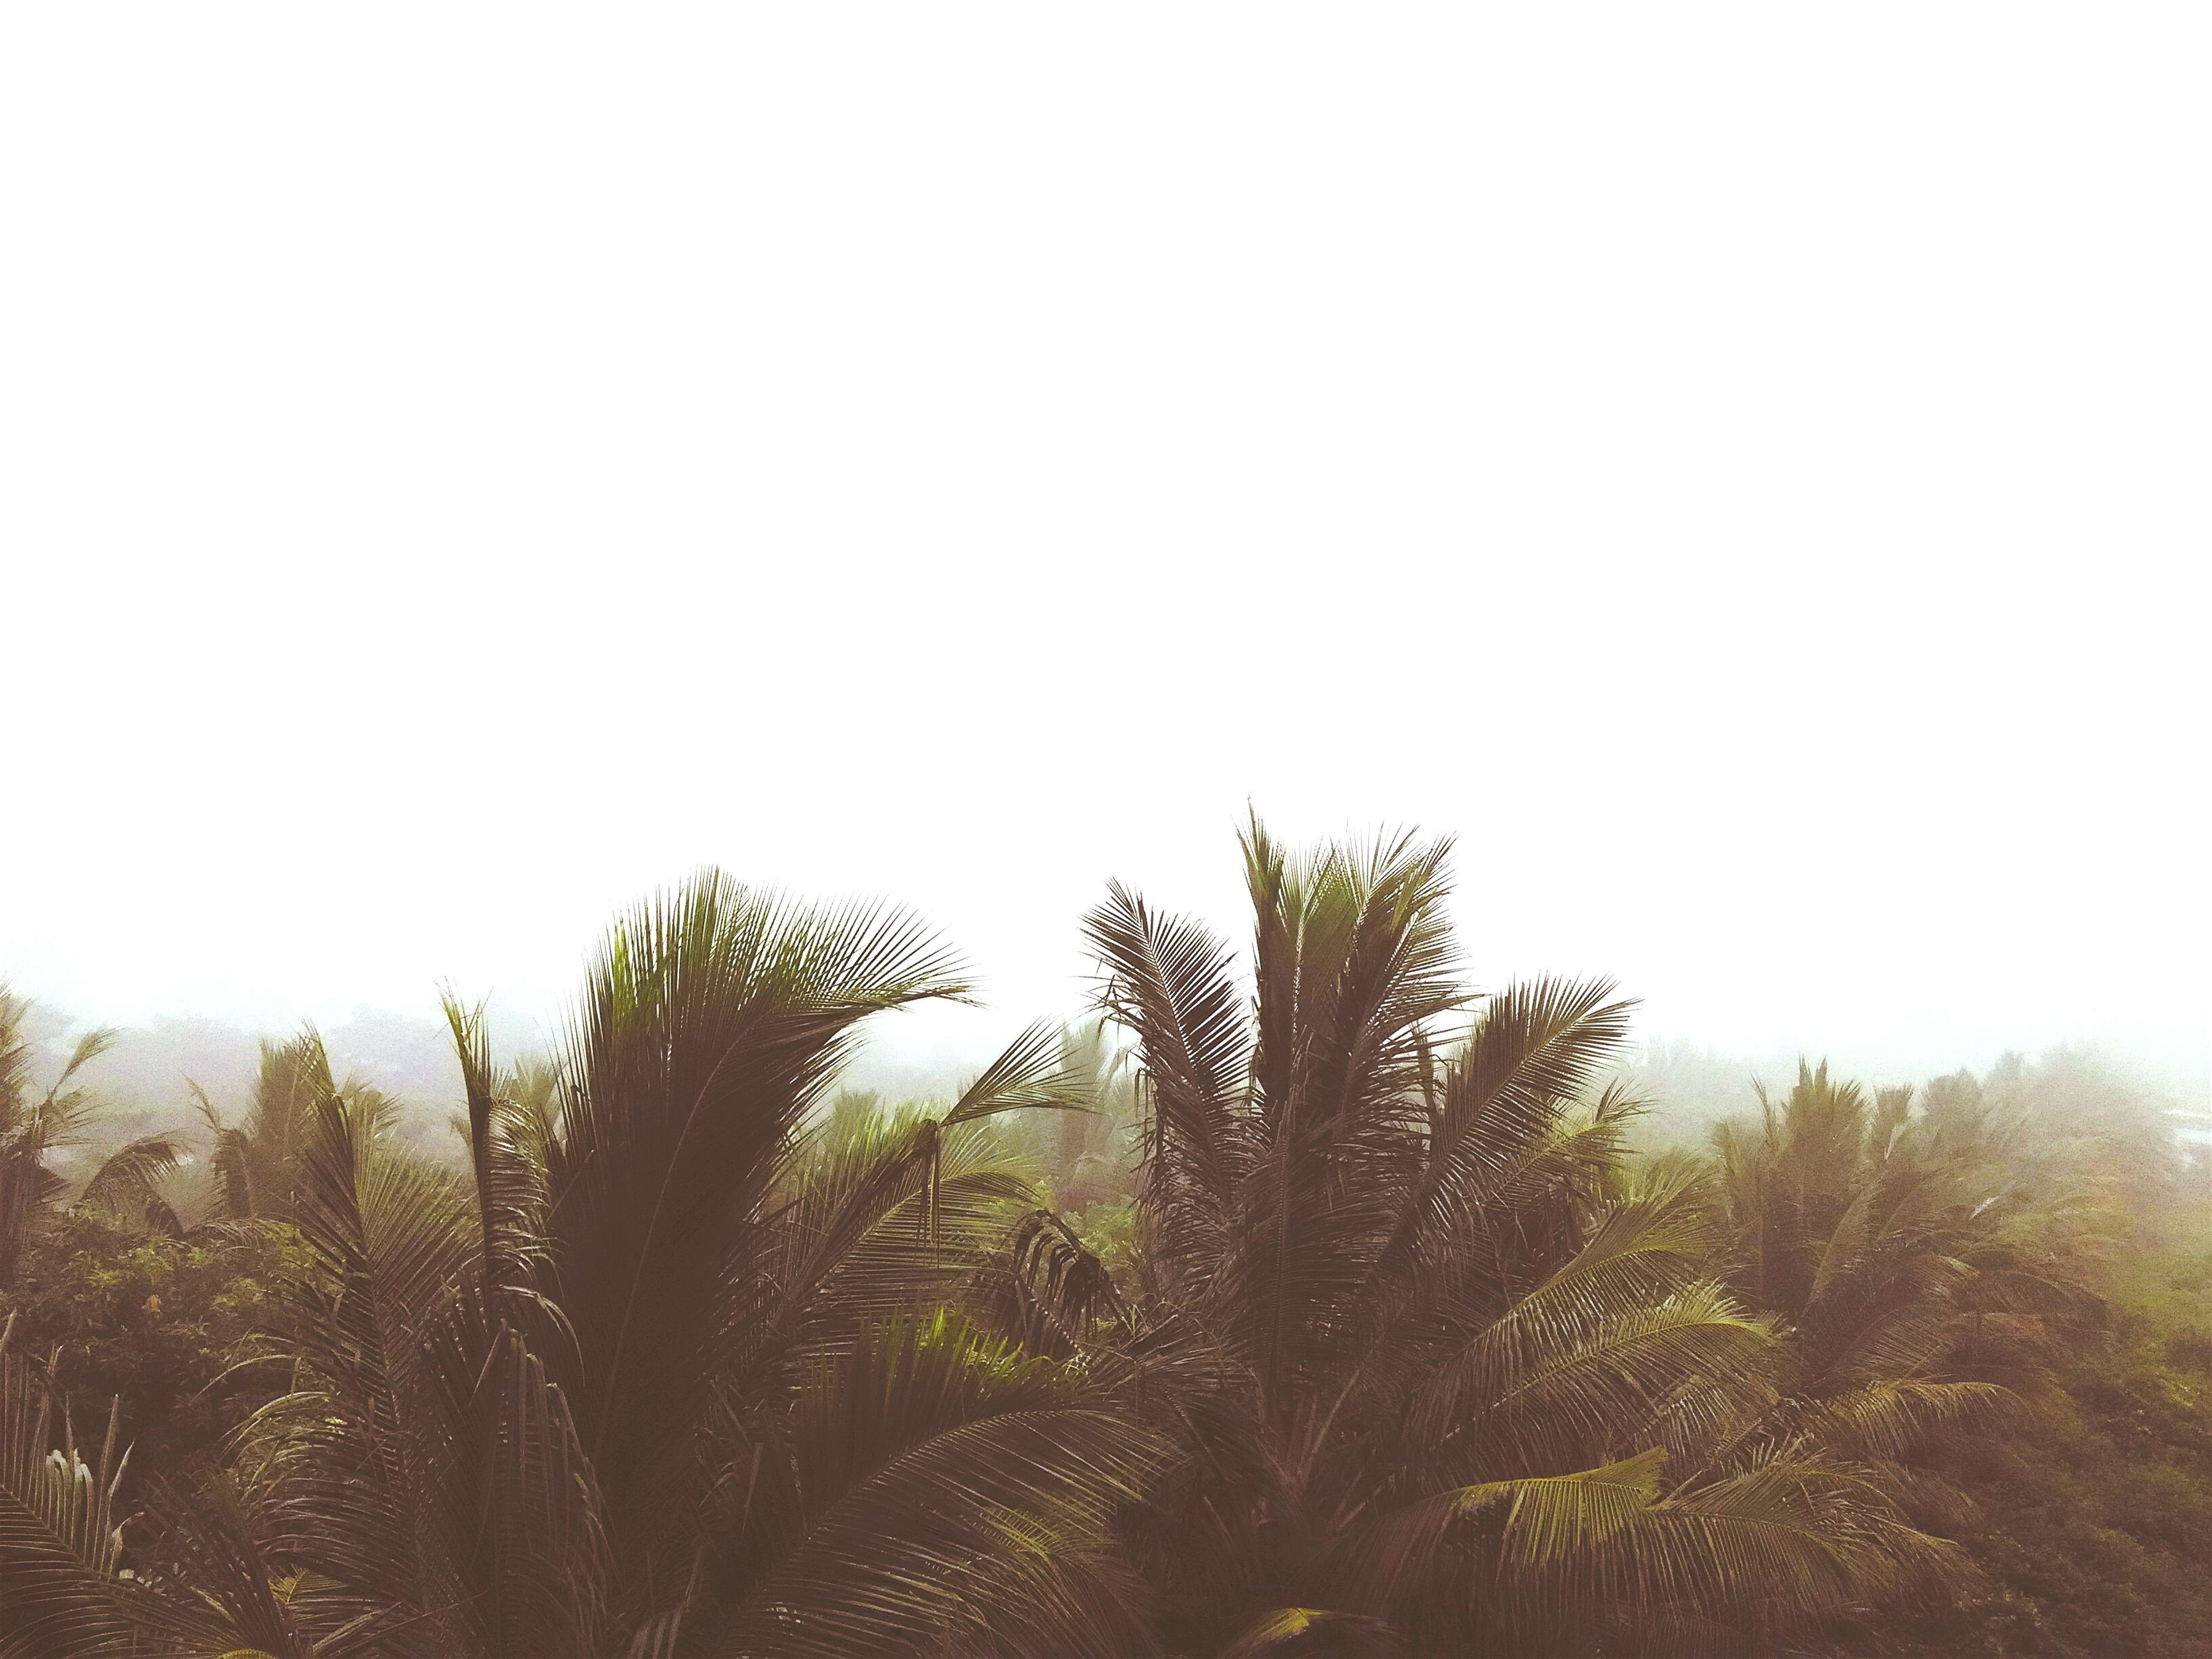 clear sky, copy space, tree, tranquility, growth, tranquil scene, nature, beauty in nature, scenics, low angle view, green color, landscape, day, plant, non-urban scene, outdoors, no people, idyllic, sky, field